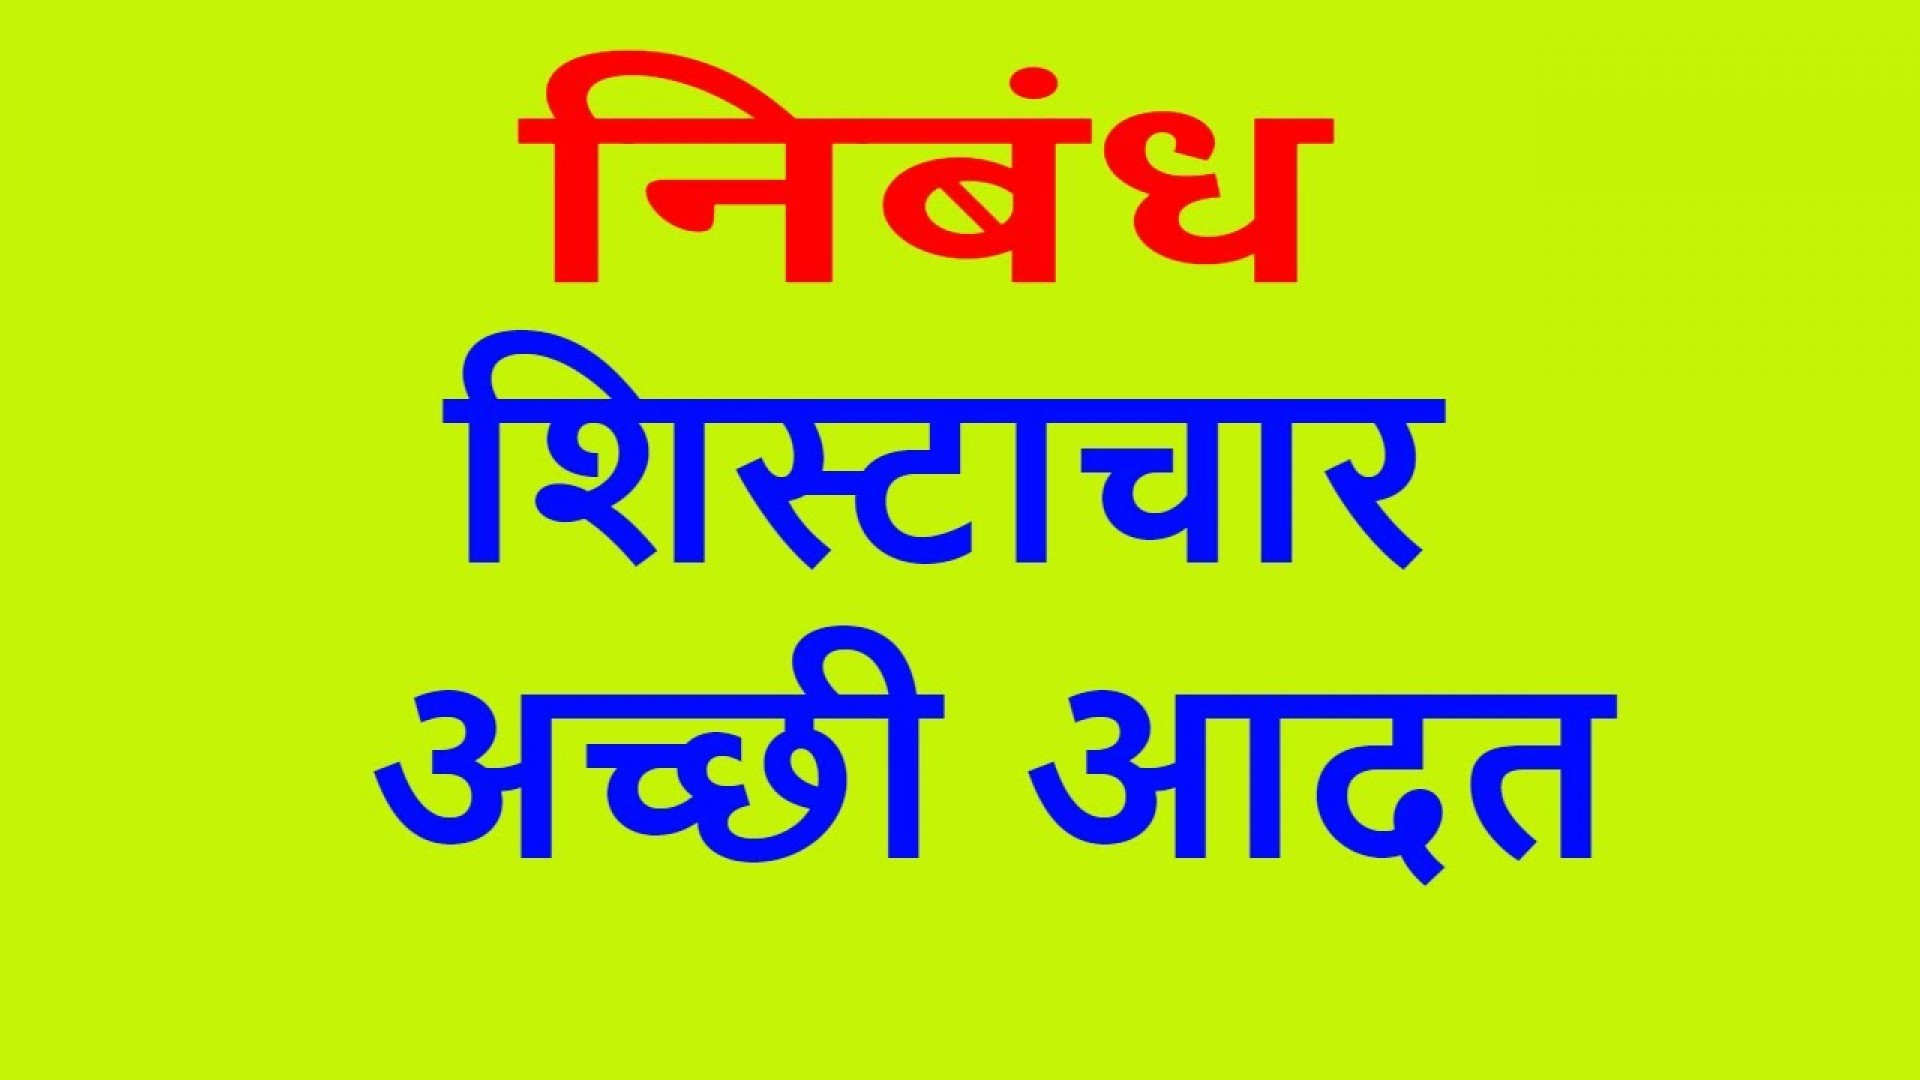 017 Maxresdefault Essay Example Good Habits In Exceptional Hindi Habit Wikipedia Eating 1920